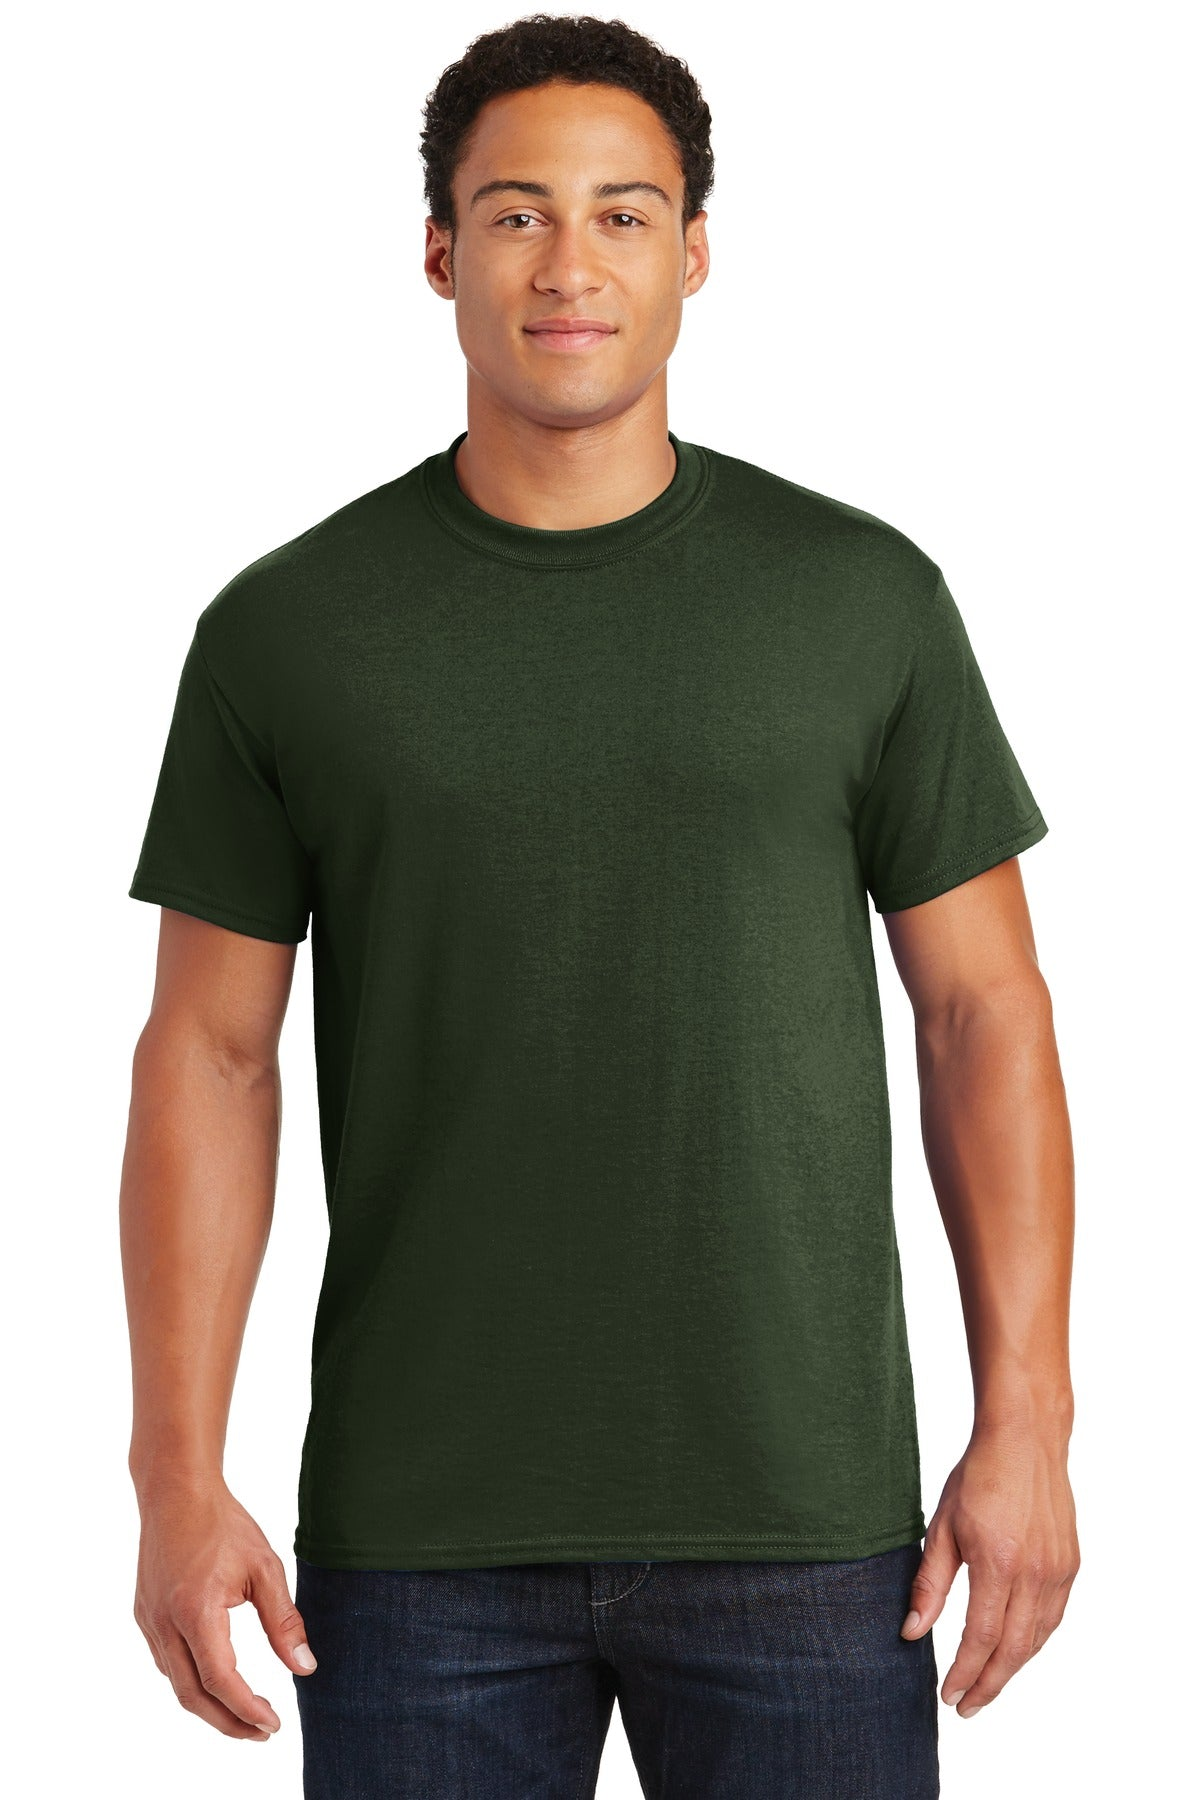 Forest Gildan DryBlend 50 Cotton/50 Poly T-Shirt.